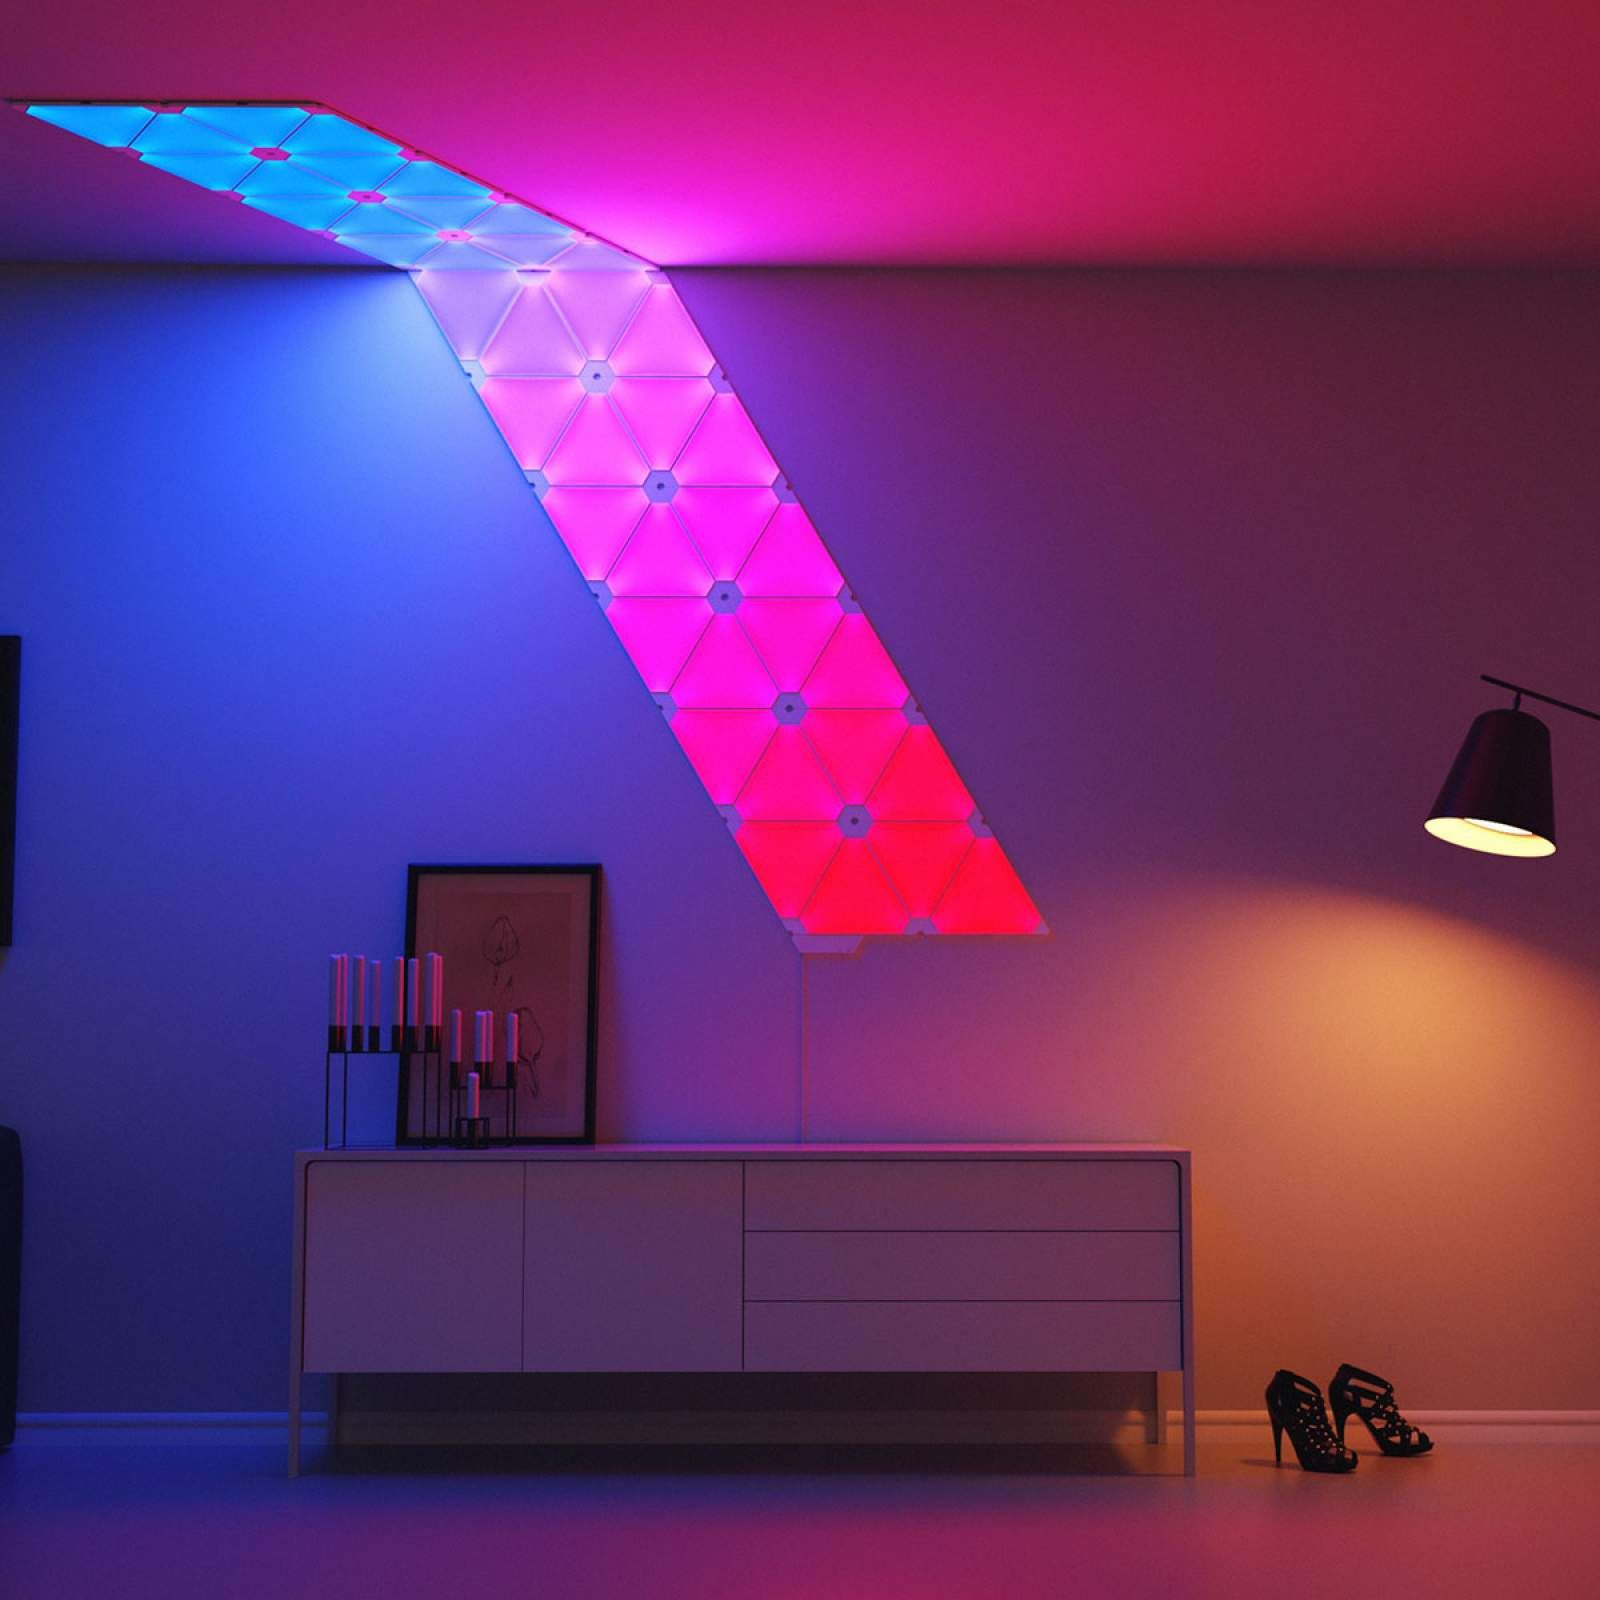 Nanoleaf Light Panels 9 Verbindungsstücke Flexibel Coole